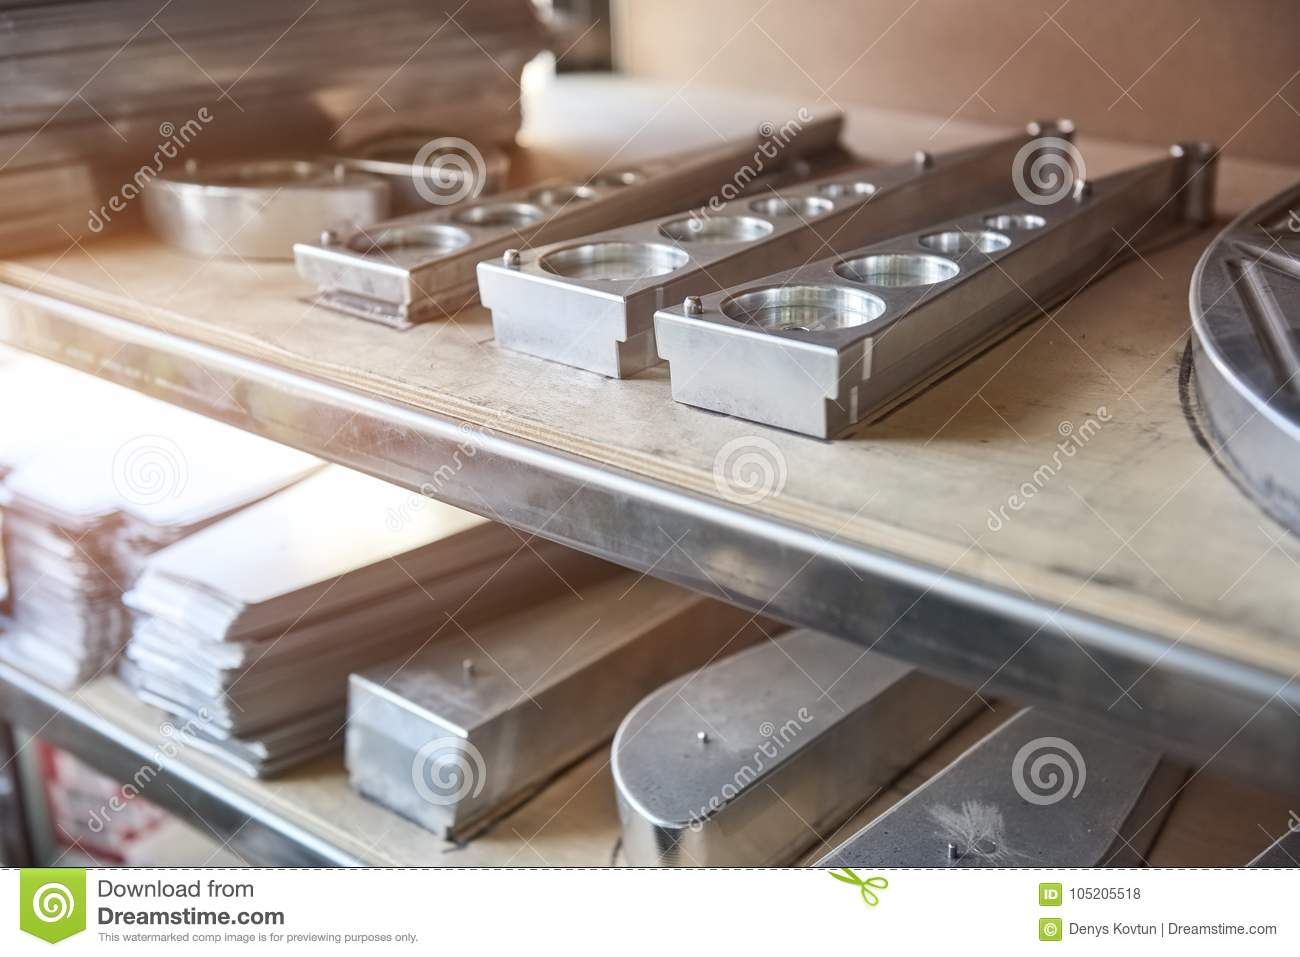 Stainless steel parts on shelf.